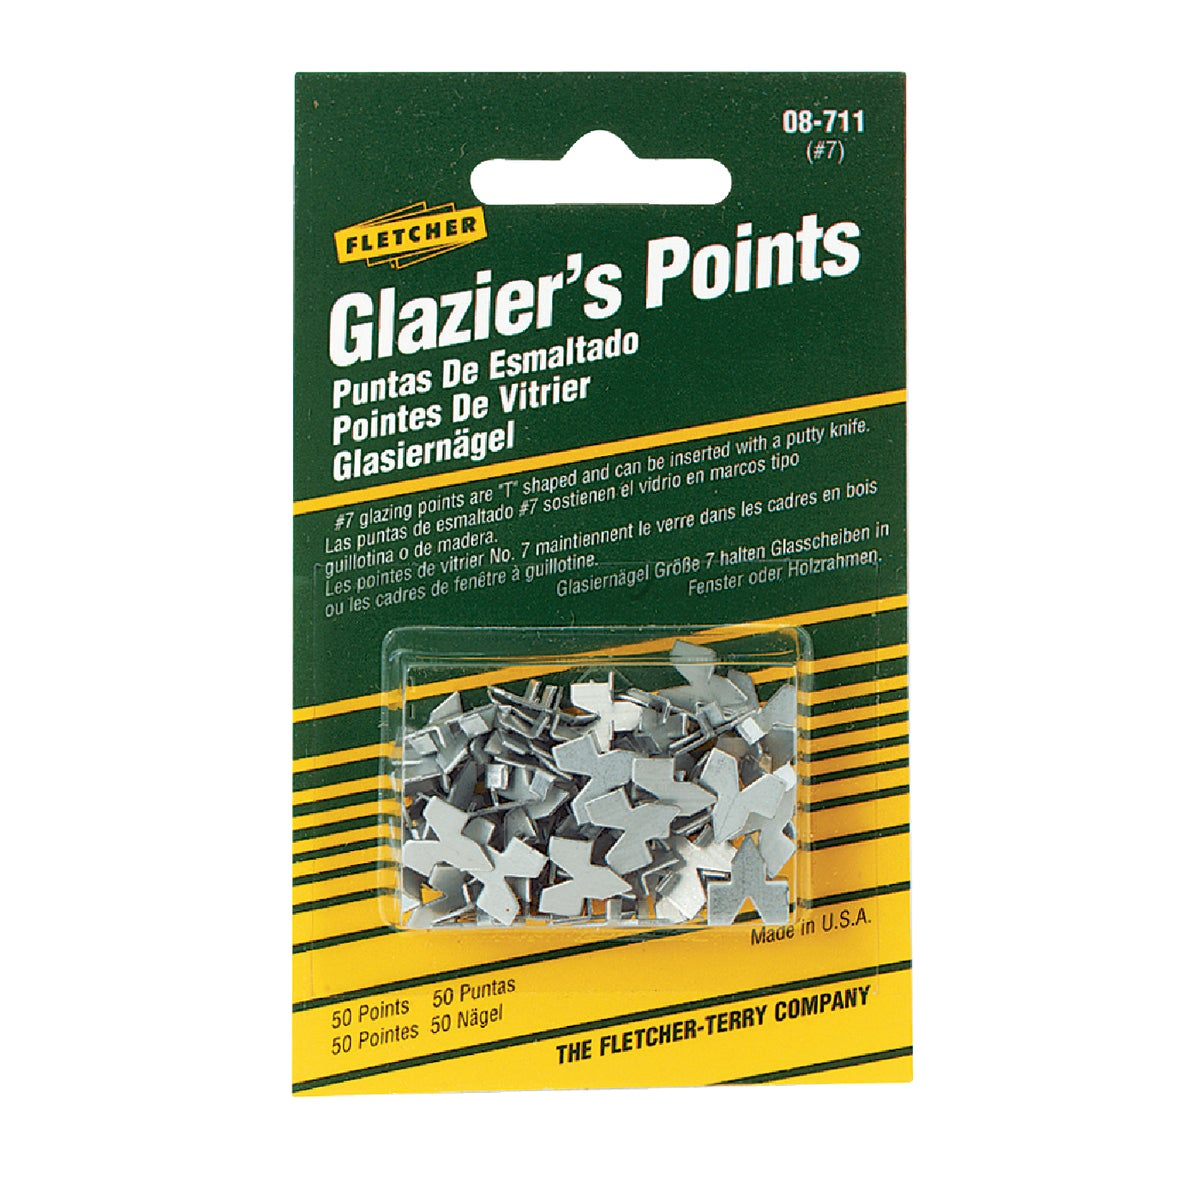 GLAZIER PUSH POINT - 08-711 by Fletcher Terry Co